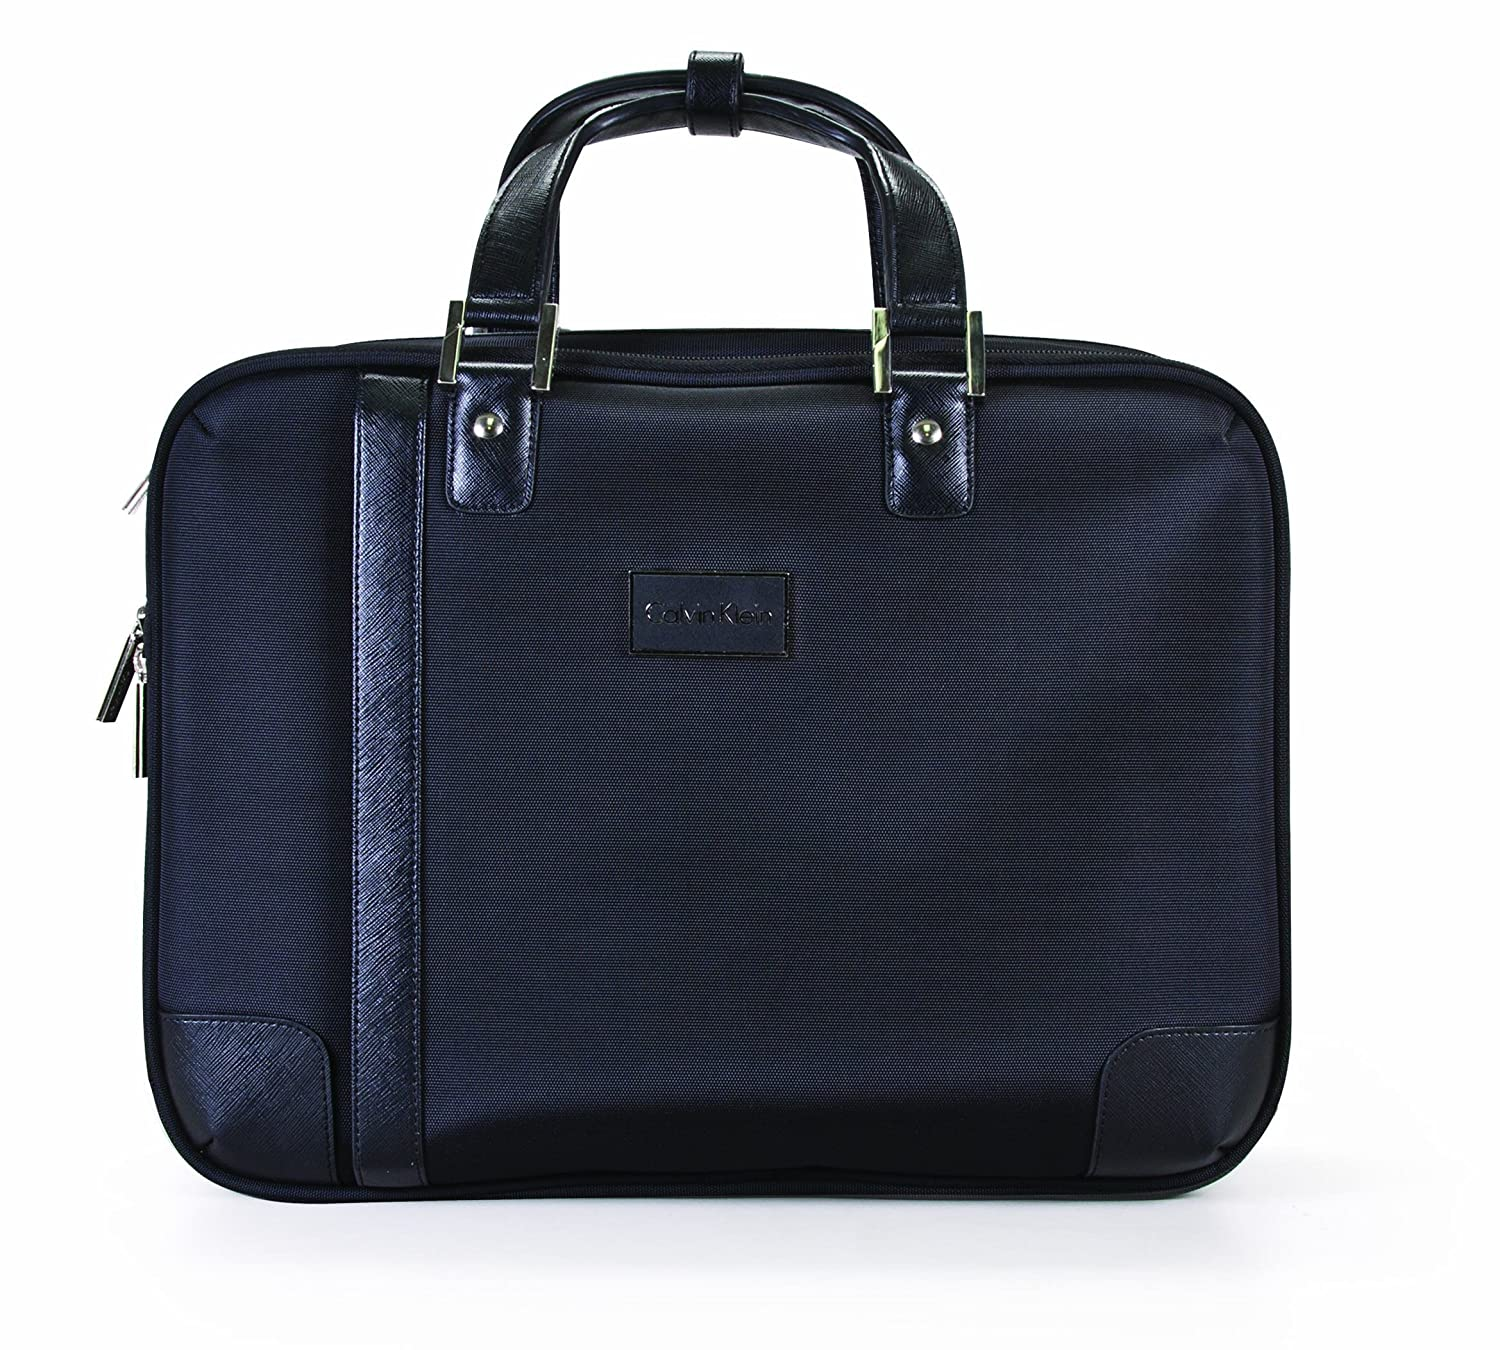 Calvin Klein Avalon 2.0 Laptop Case Black One Size